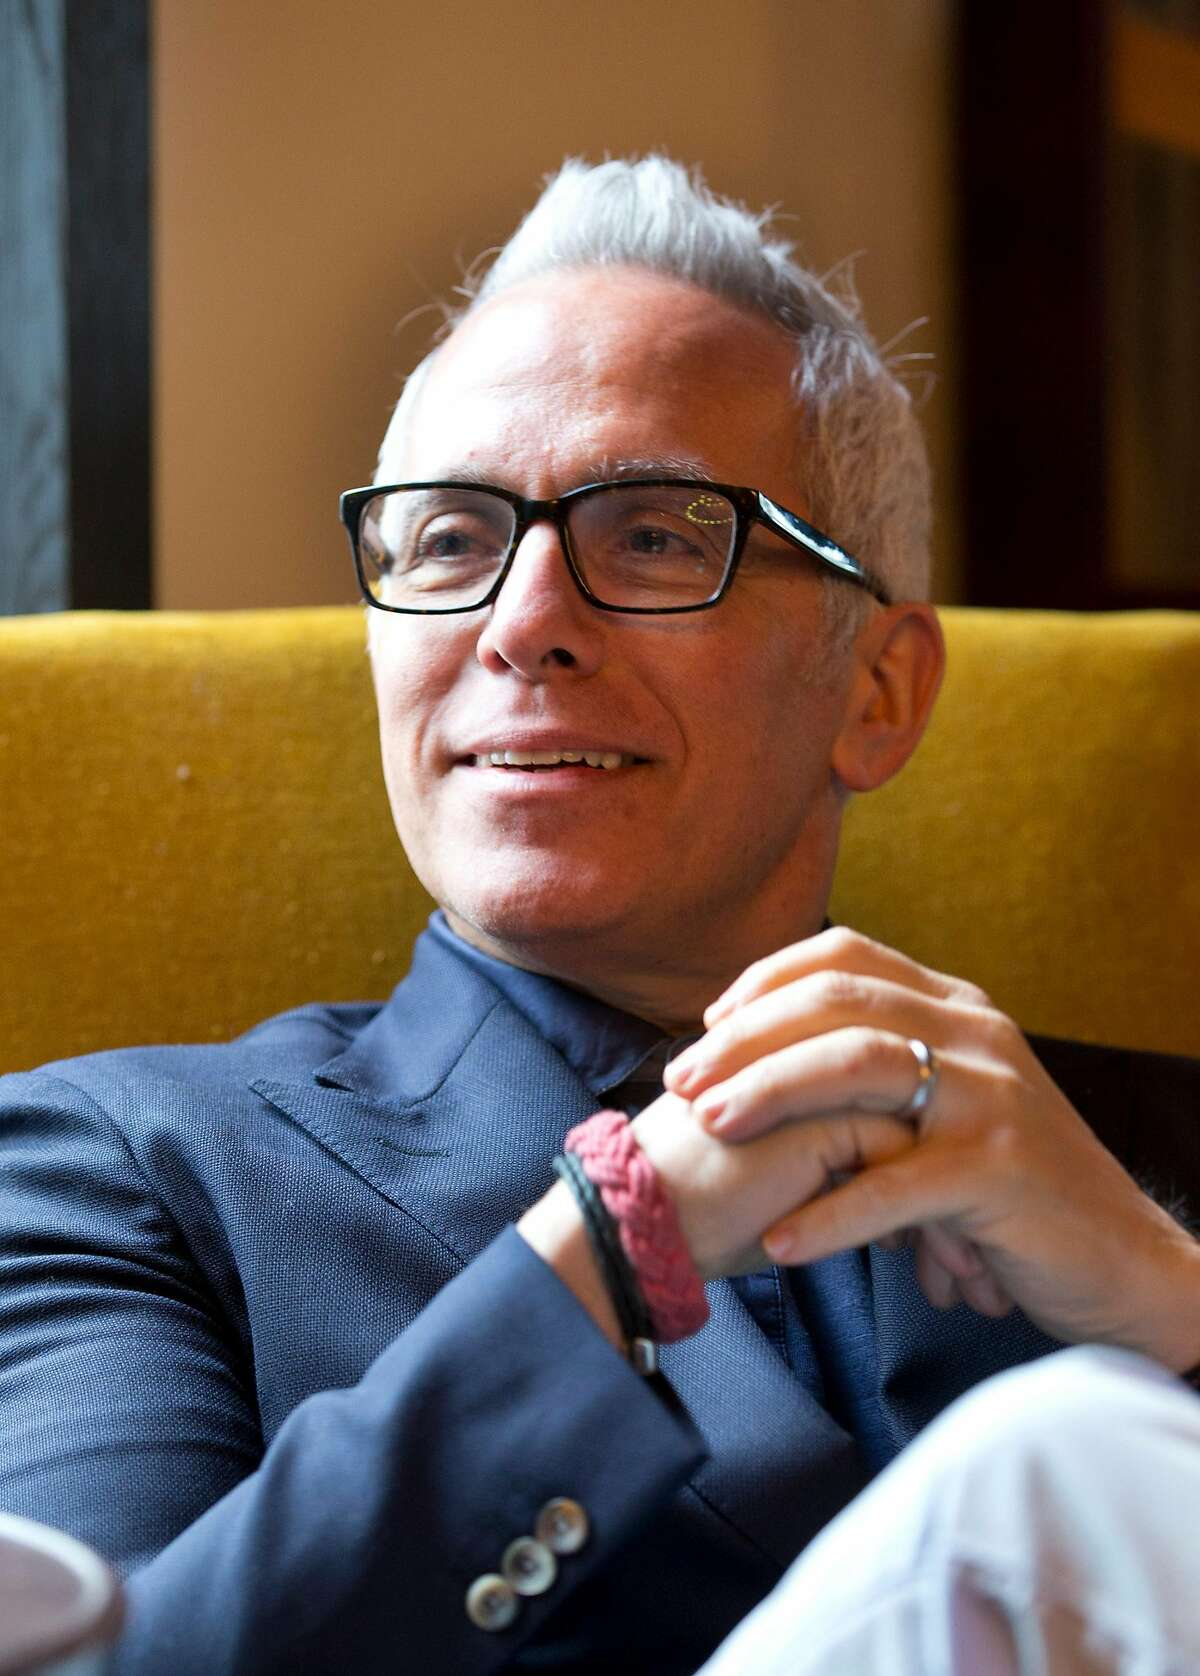 """Chef Geoffrey Zakarian listens to a question during an interview with The Associated Press, Friday, Feb. 20, 2015, in Miami Beach, Fla. Now honored with an Iron Chef title, a judging seat on """"Chopped"""" and a best-selling cookbook, Zakarian says opening a restaurant is a lot like playing poker. """"It's a crap shoot. We gamble when we open a restaurant,"""" said Zakarian, whose restaurants include The Lambs Club and The National. (AP Photo/Wilfredo Lee)"""